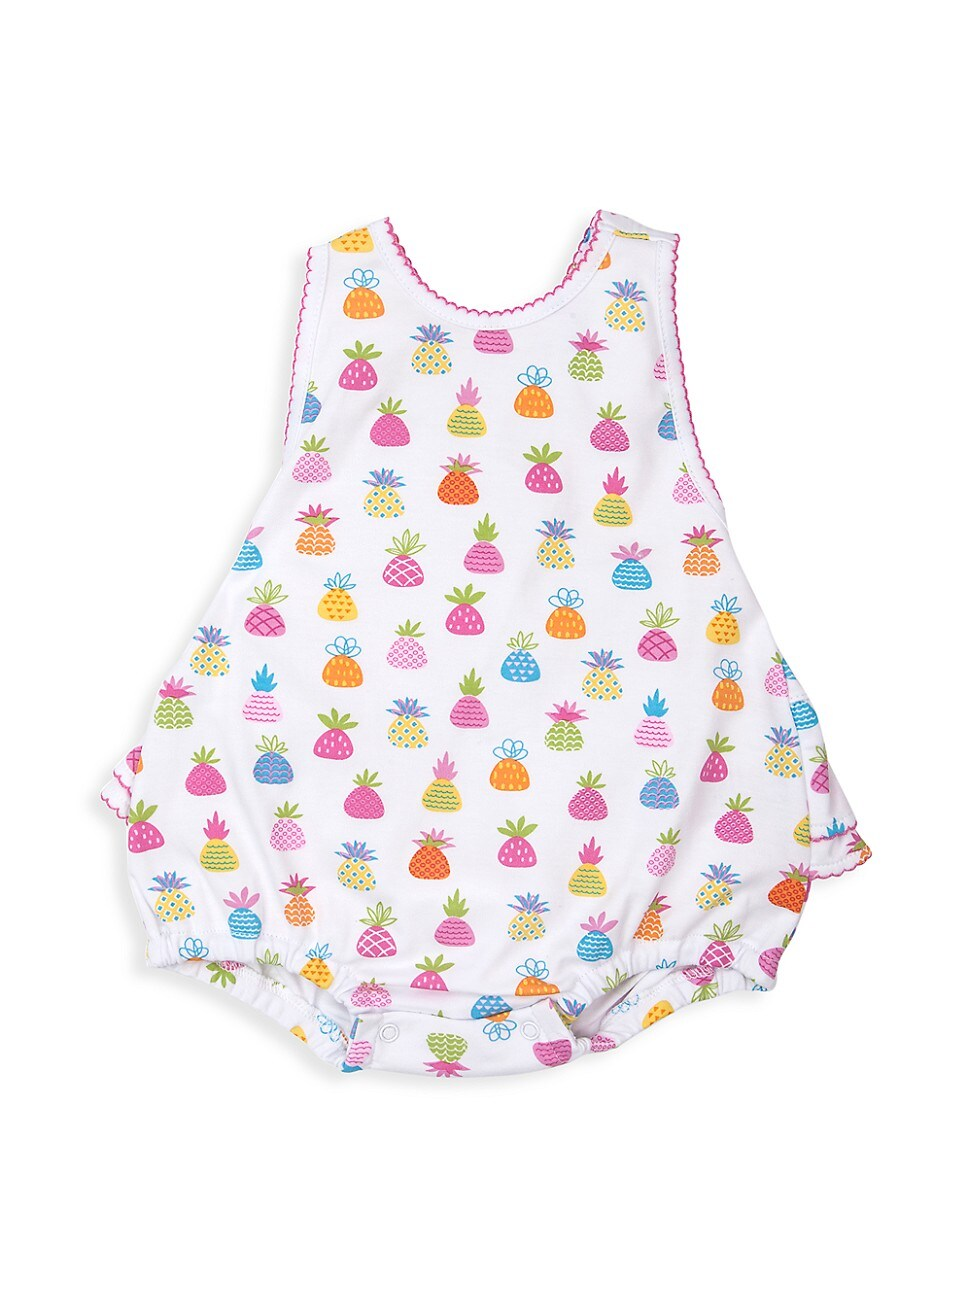 Kissy Kissy Cottons BABY GIRL'S PINEAPPLE ISLAND PRINT PIMA COTTON BUBBLE